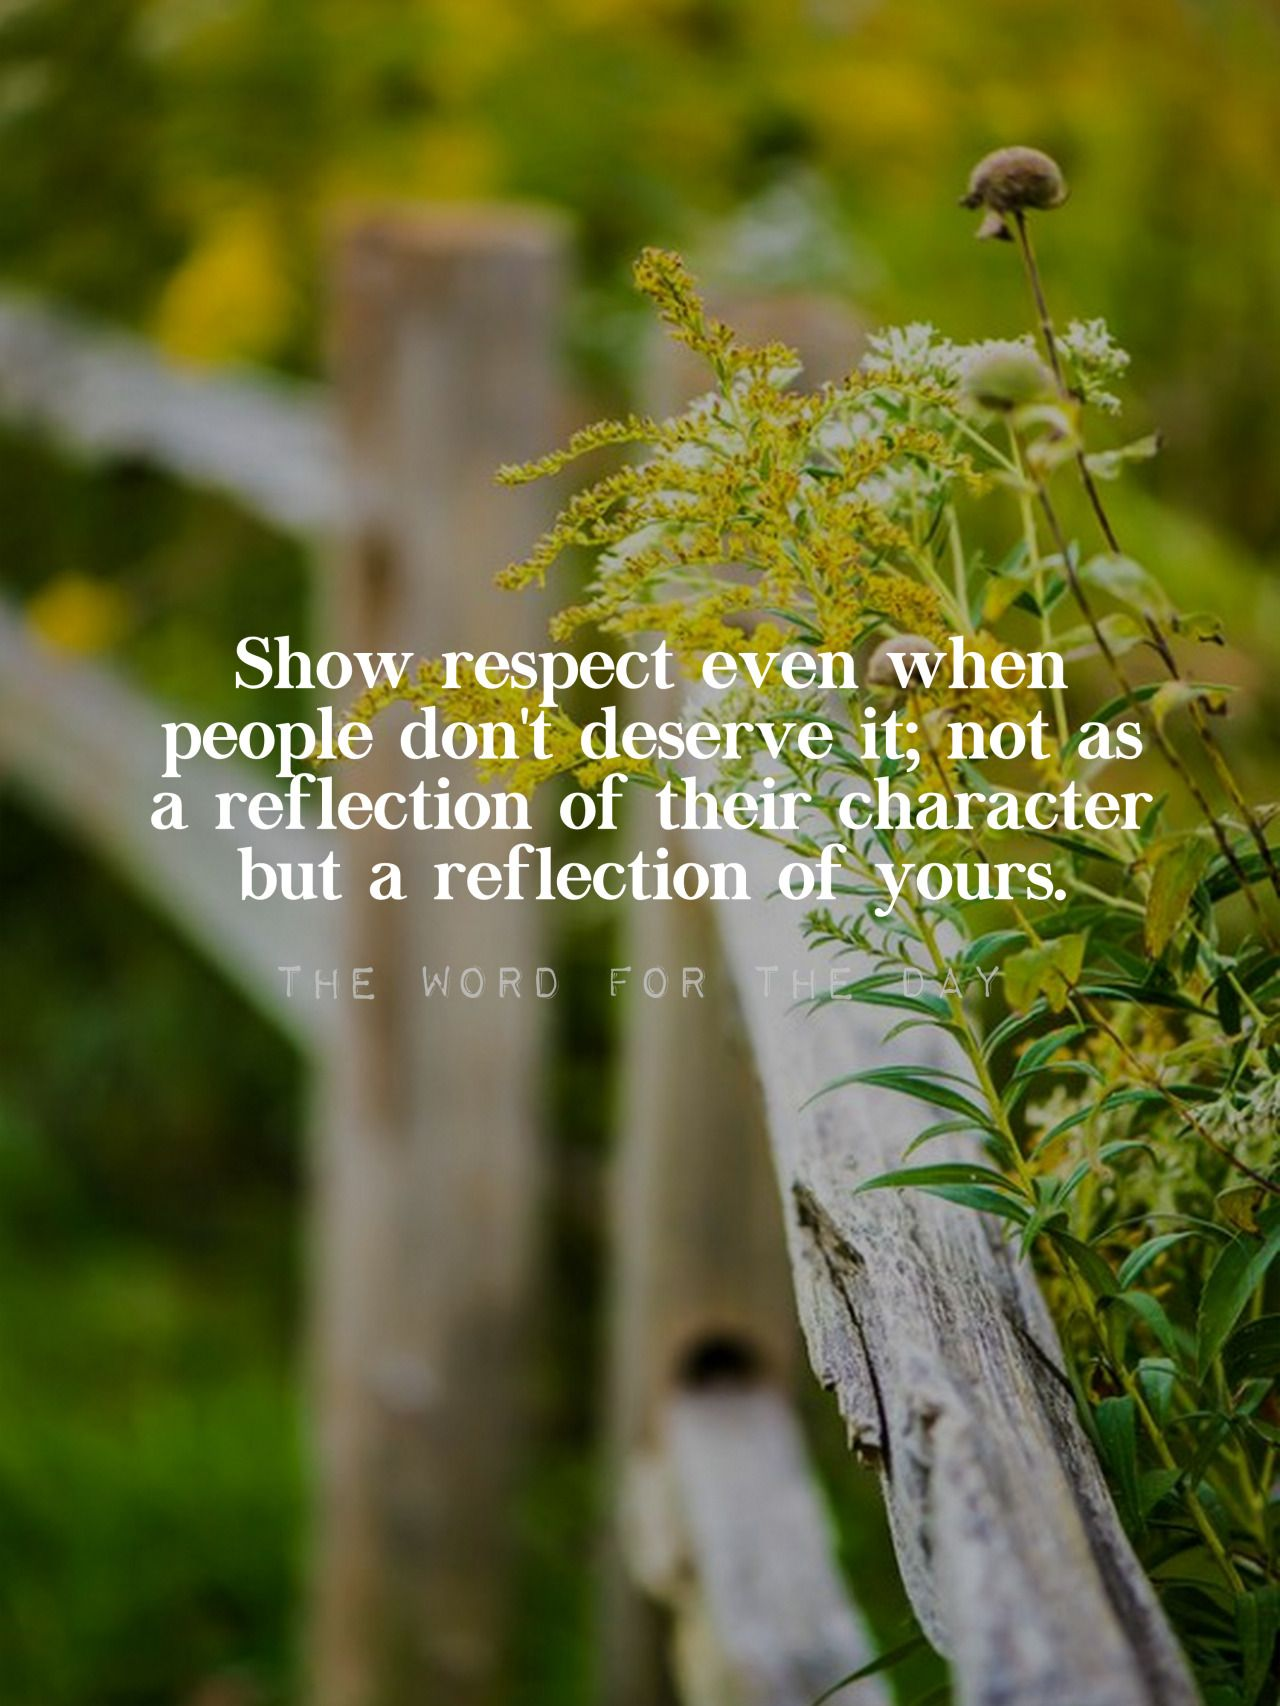 The World Has Lost The Value Of Showing Respect And Honouring